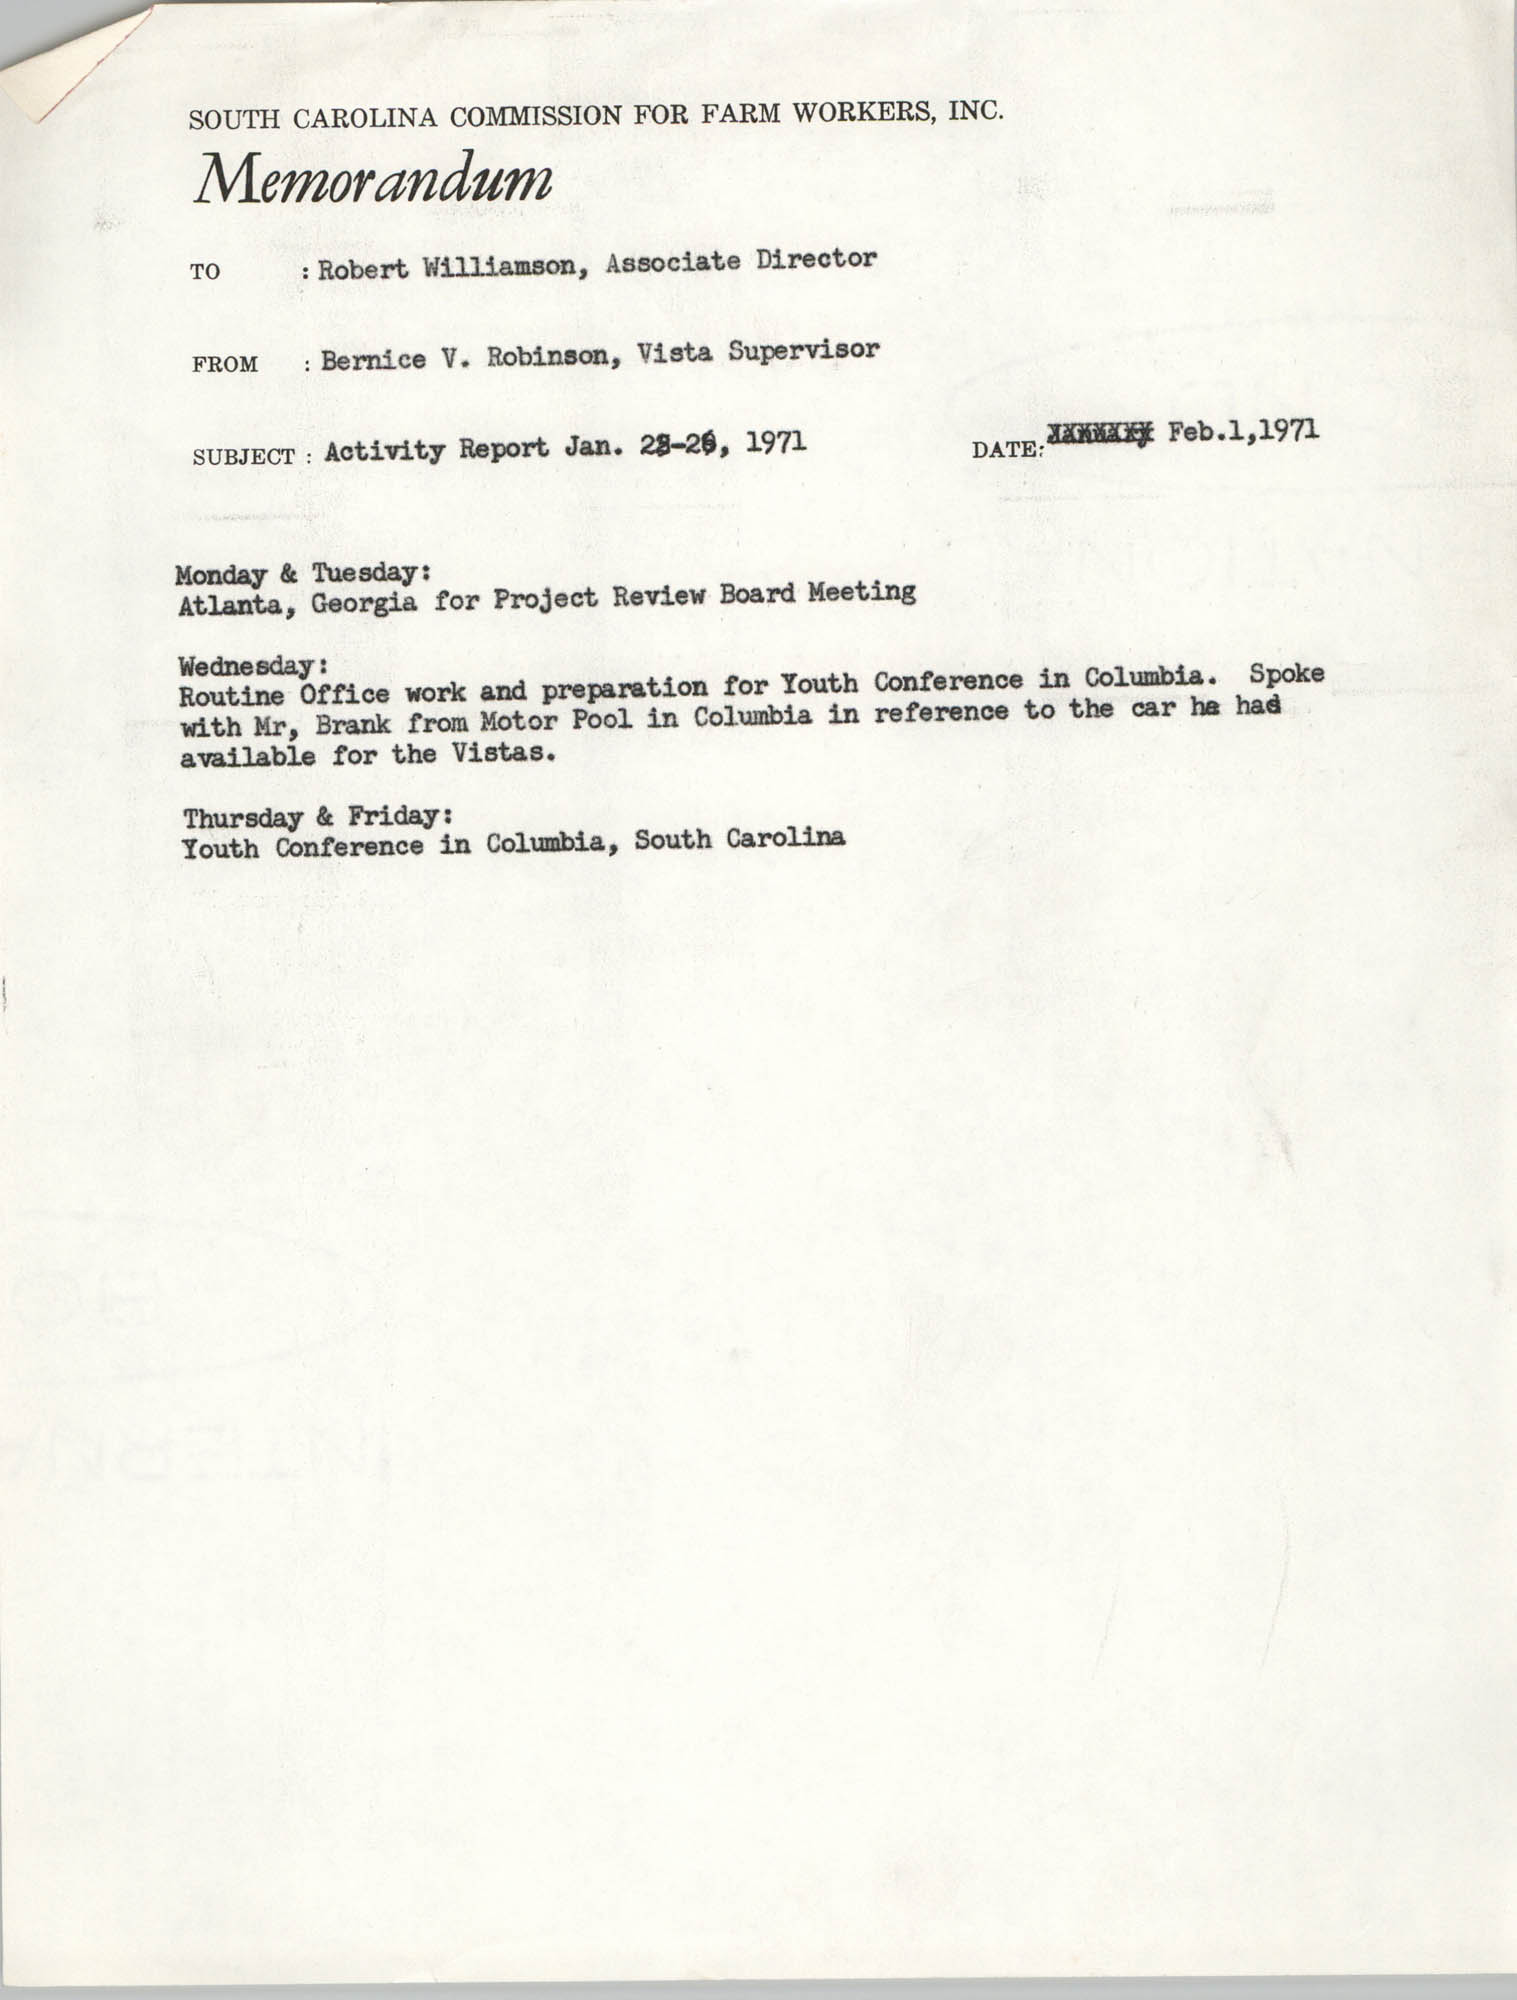 Memorandum from Bernice V. Robinson to Robert Williamson, February 1, 1971